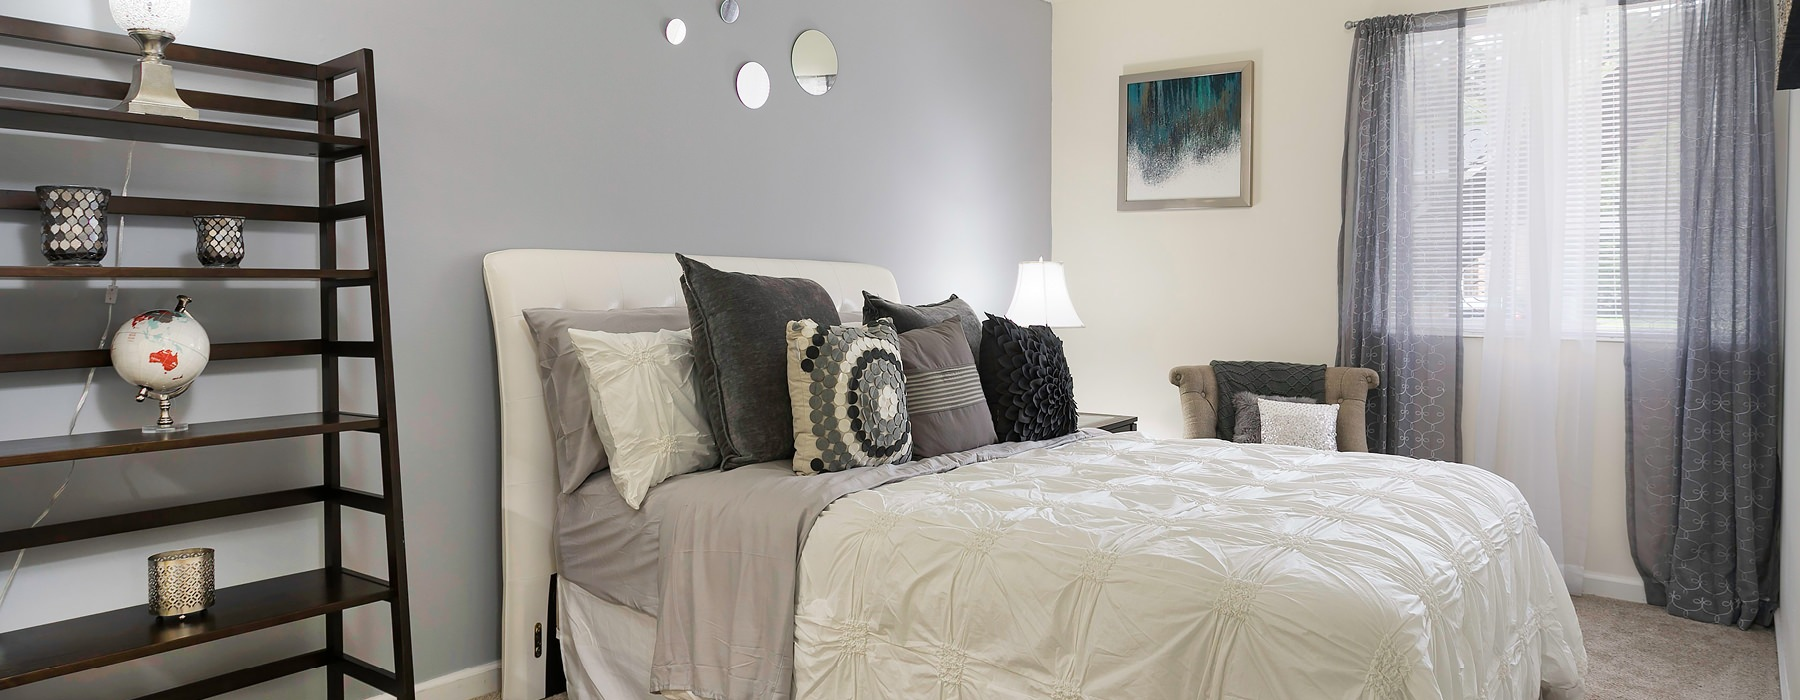 spacious, brightly lit bedroom with accent wall